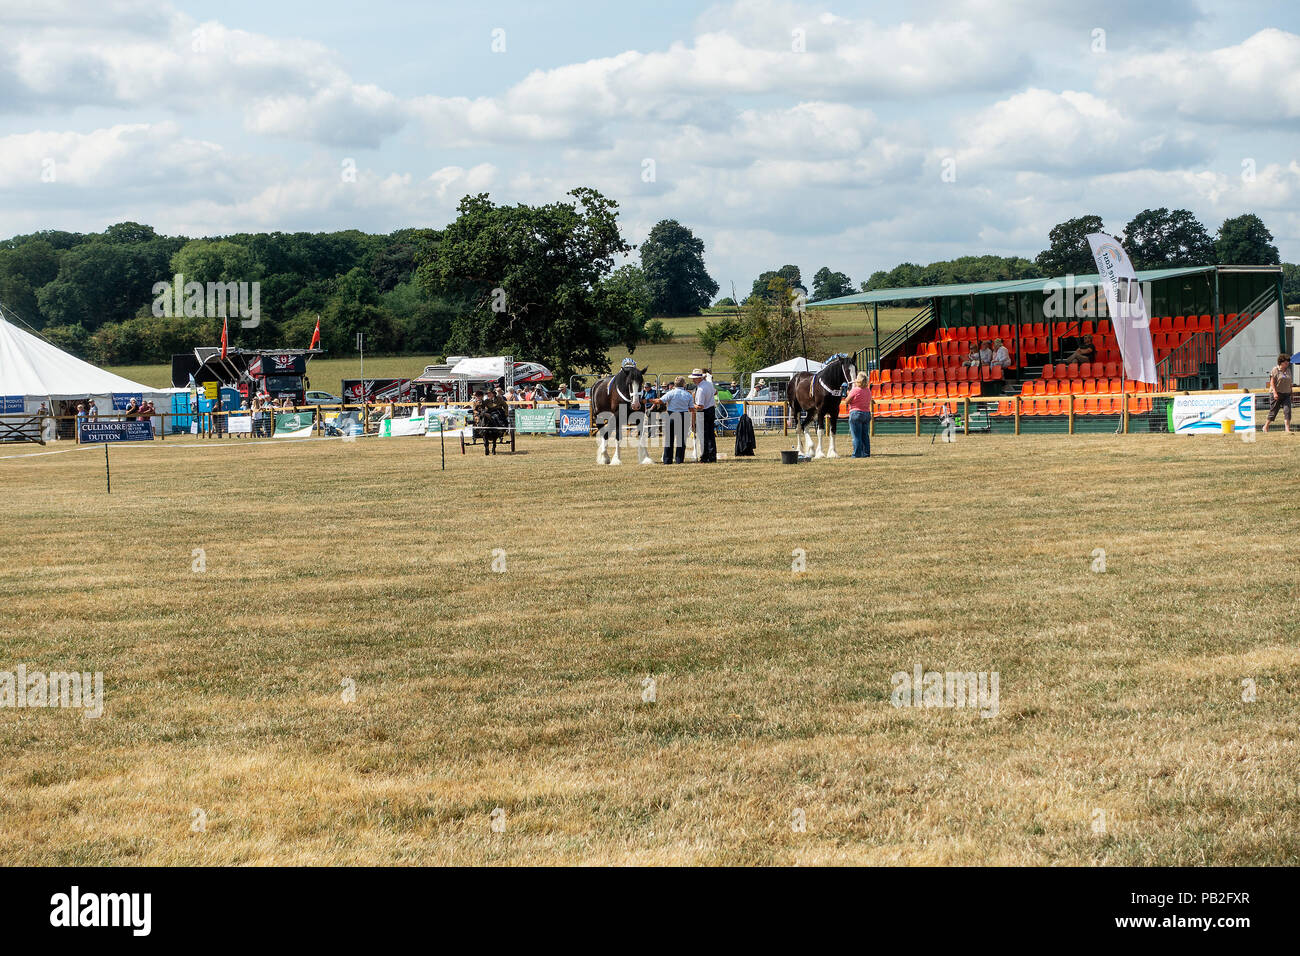 Shire Horses in the Show Ring in Competition at the Annual Nantwich Agricultural Show in Cheshire England United Kingdom UK - Stock Image